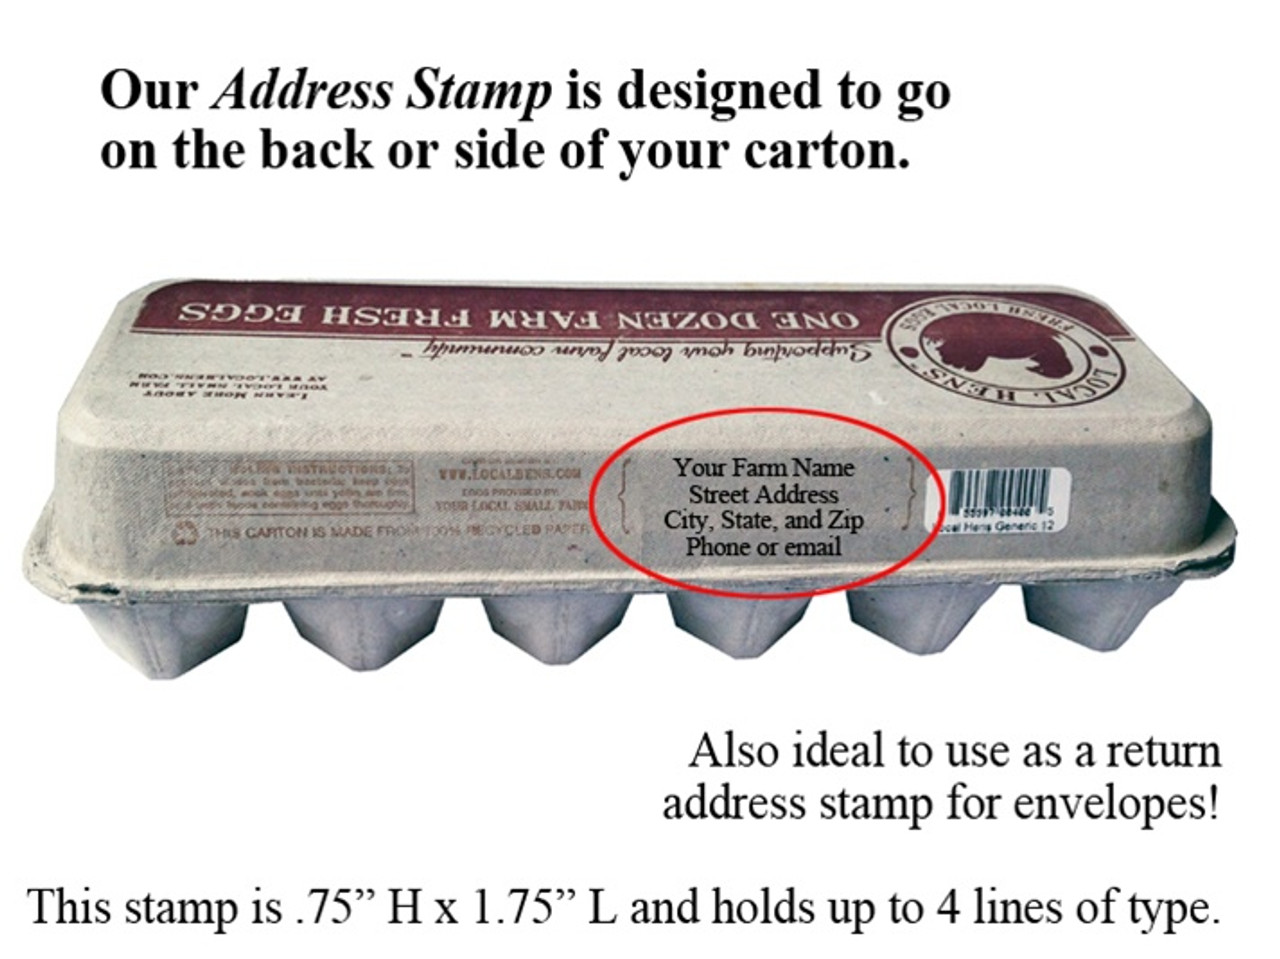 Name & Address for Carton Back: Self Inking